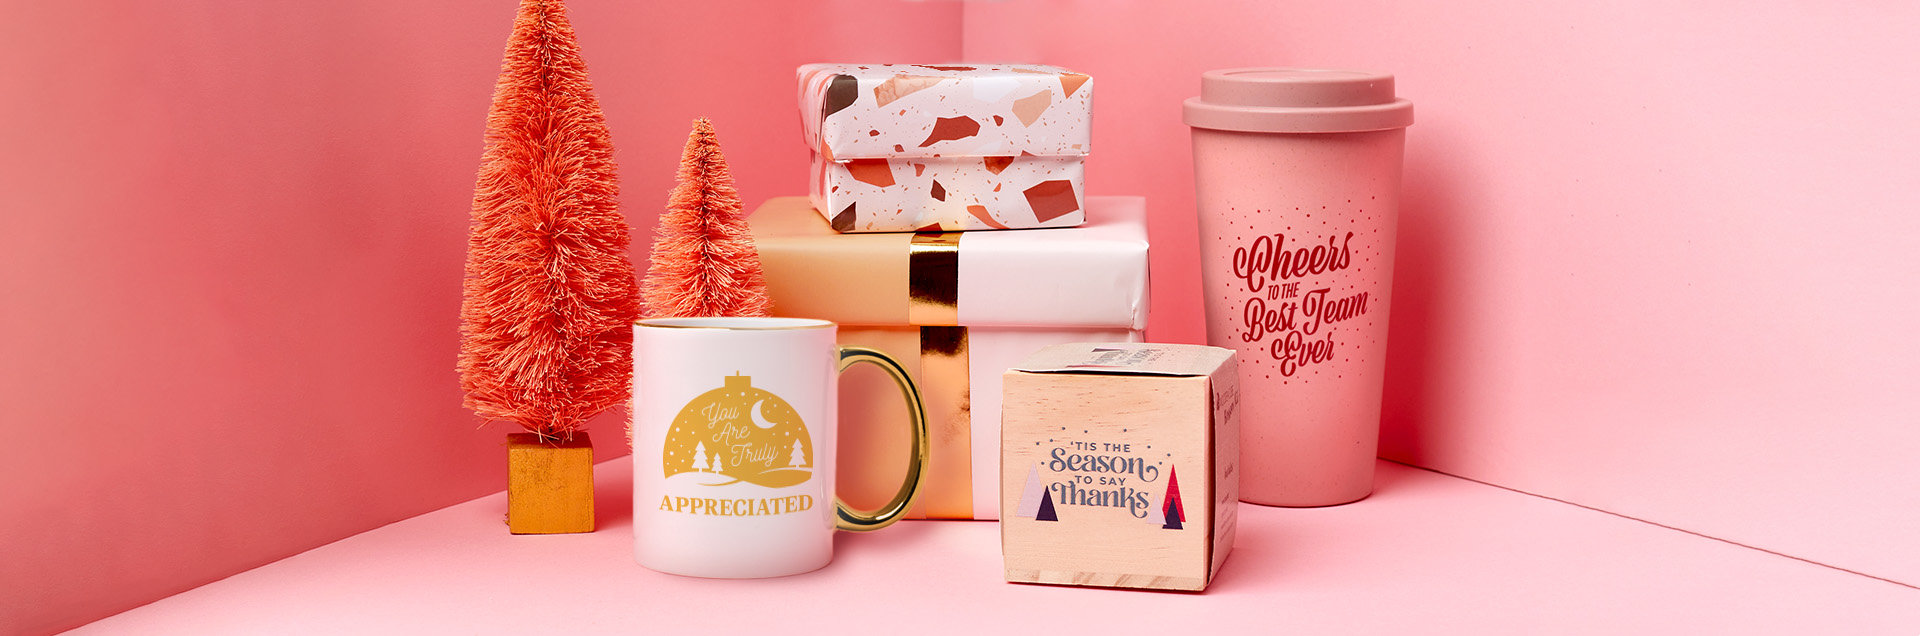 All Baudville Holiday Products